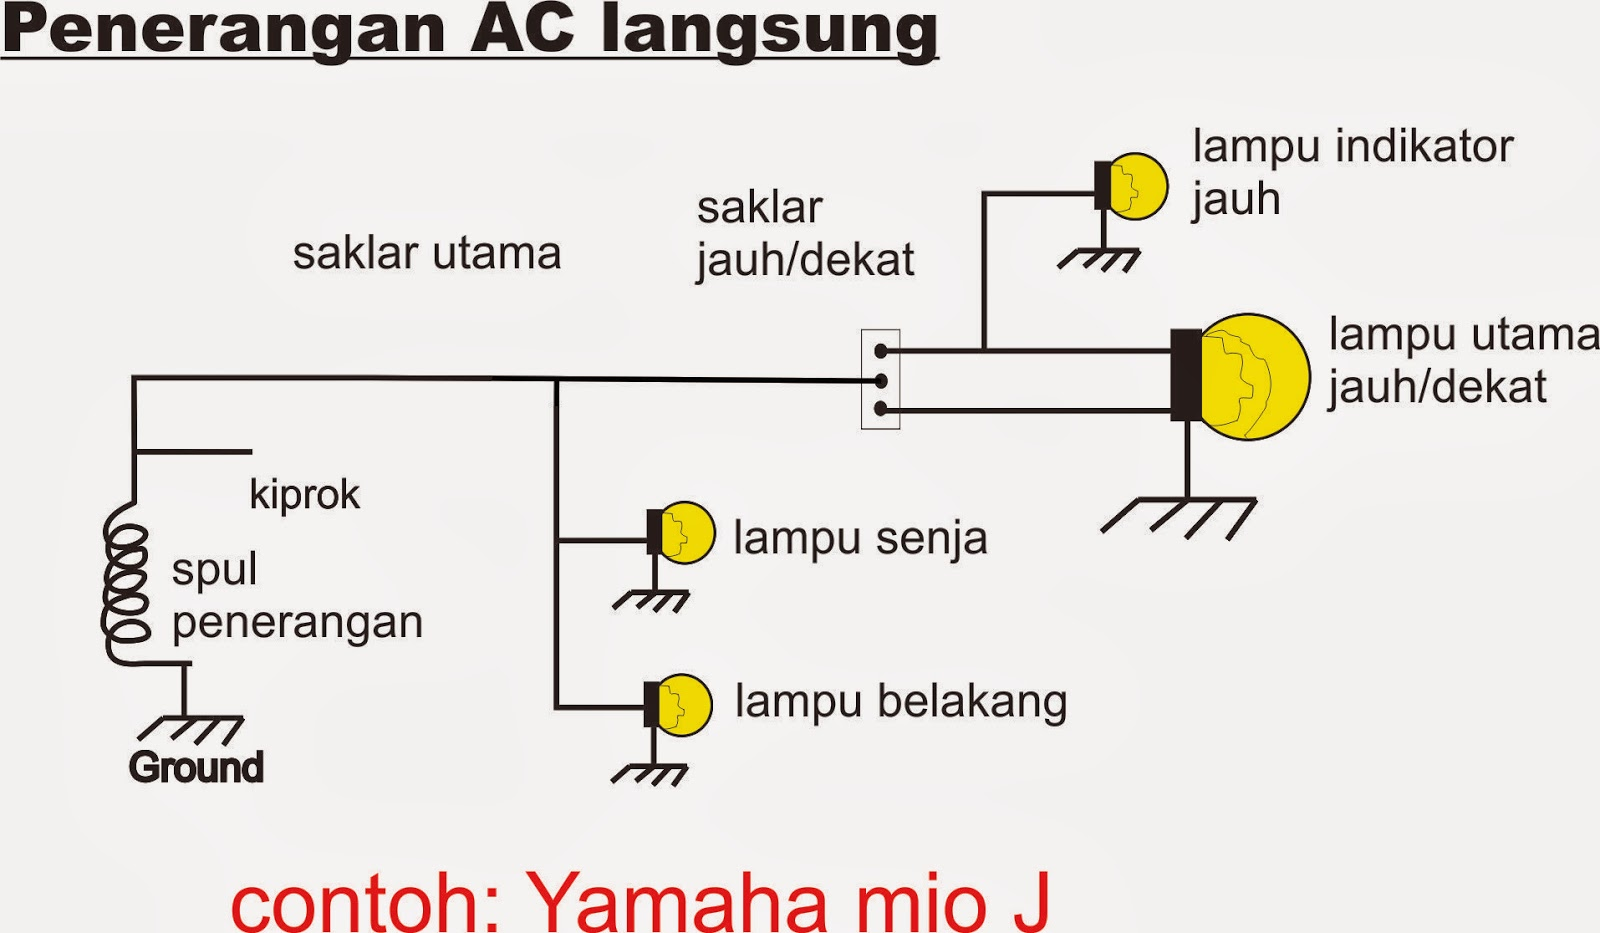 diagram kelistrikan yamaha mio diagram image auto champion training centre jogja skema lampu sepeda motor on diagram kelistrikan yamaha mio